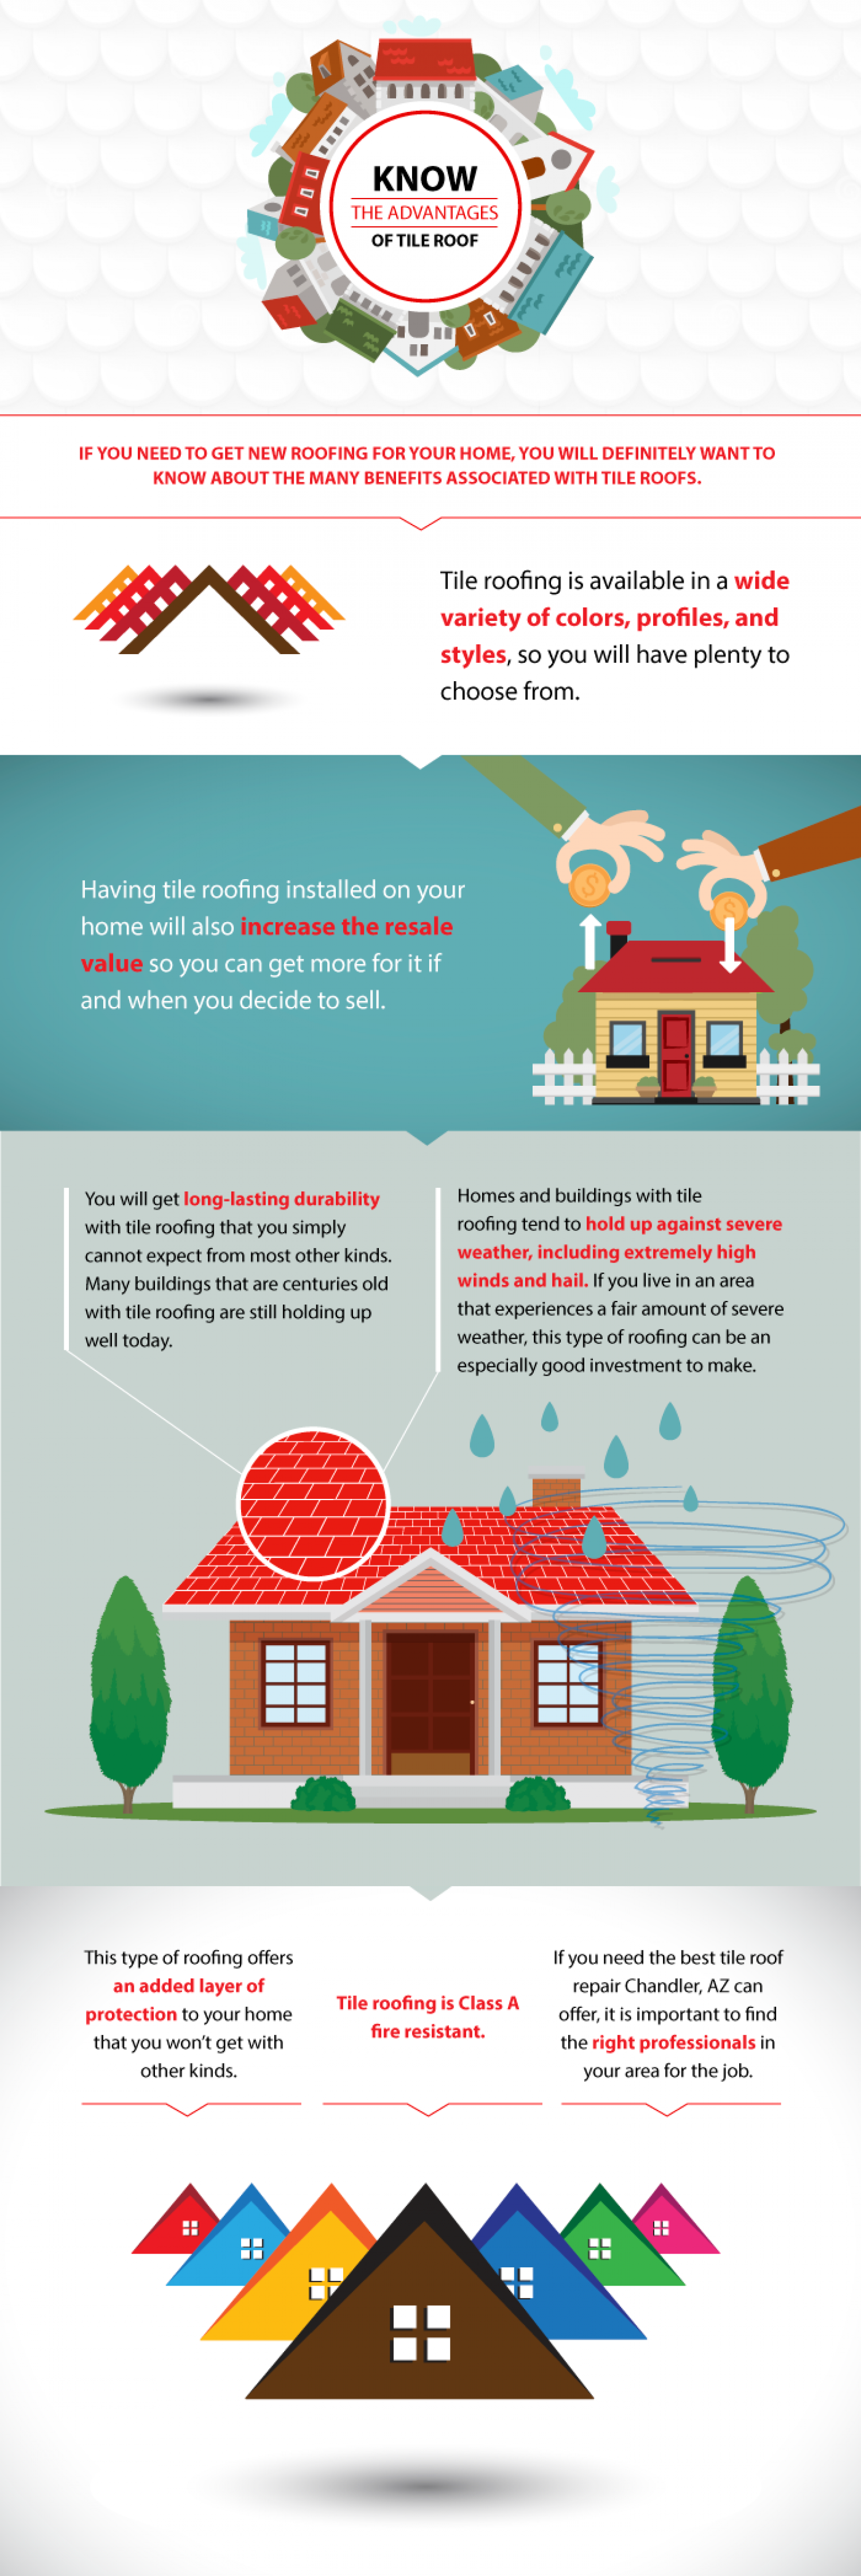 Know the Advantages of Tile Roof Infographic